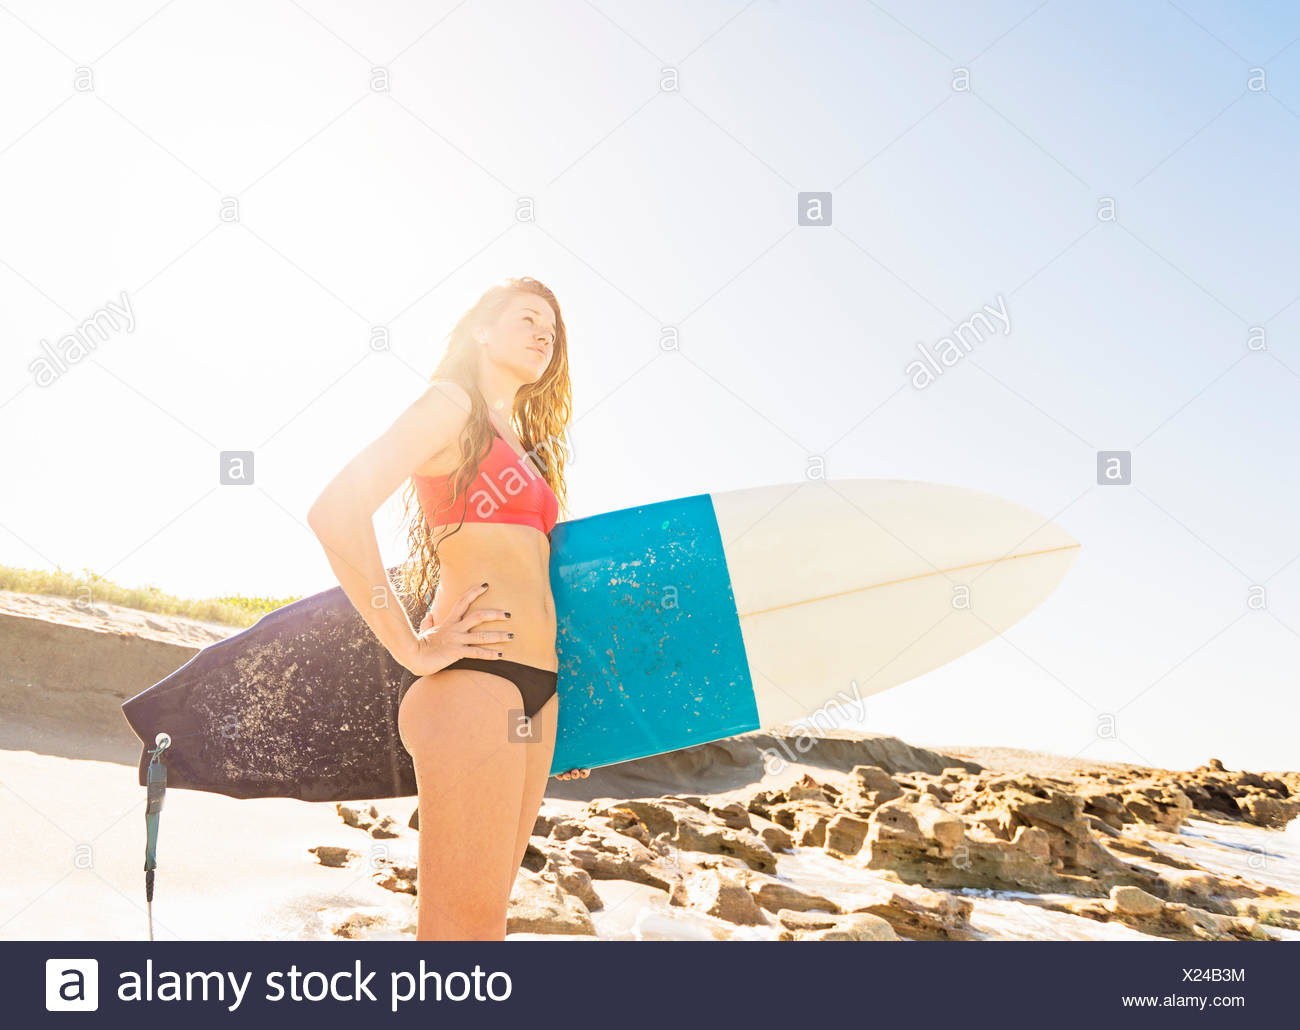 USA, Florida, Jupiter, Portrait of young woman standing on beach, holding surfboard - Stock Image